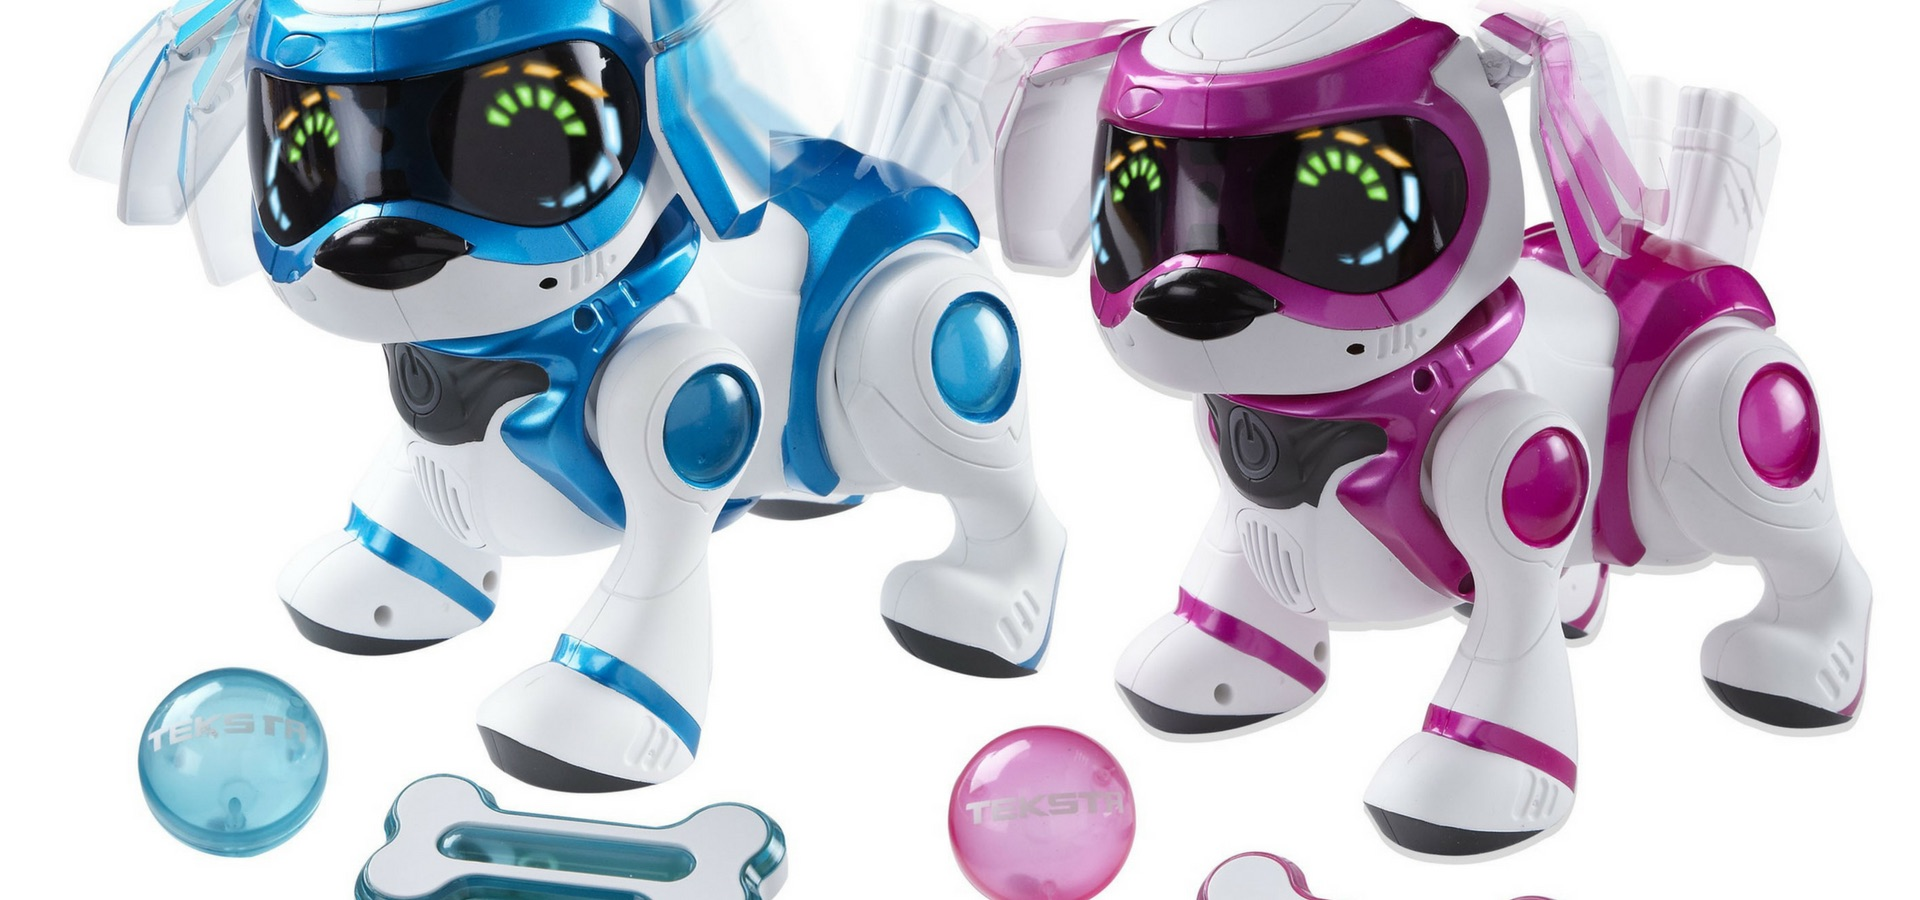 Techy Toys Bringing Pets To Life